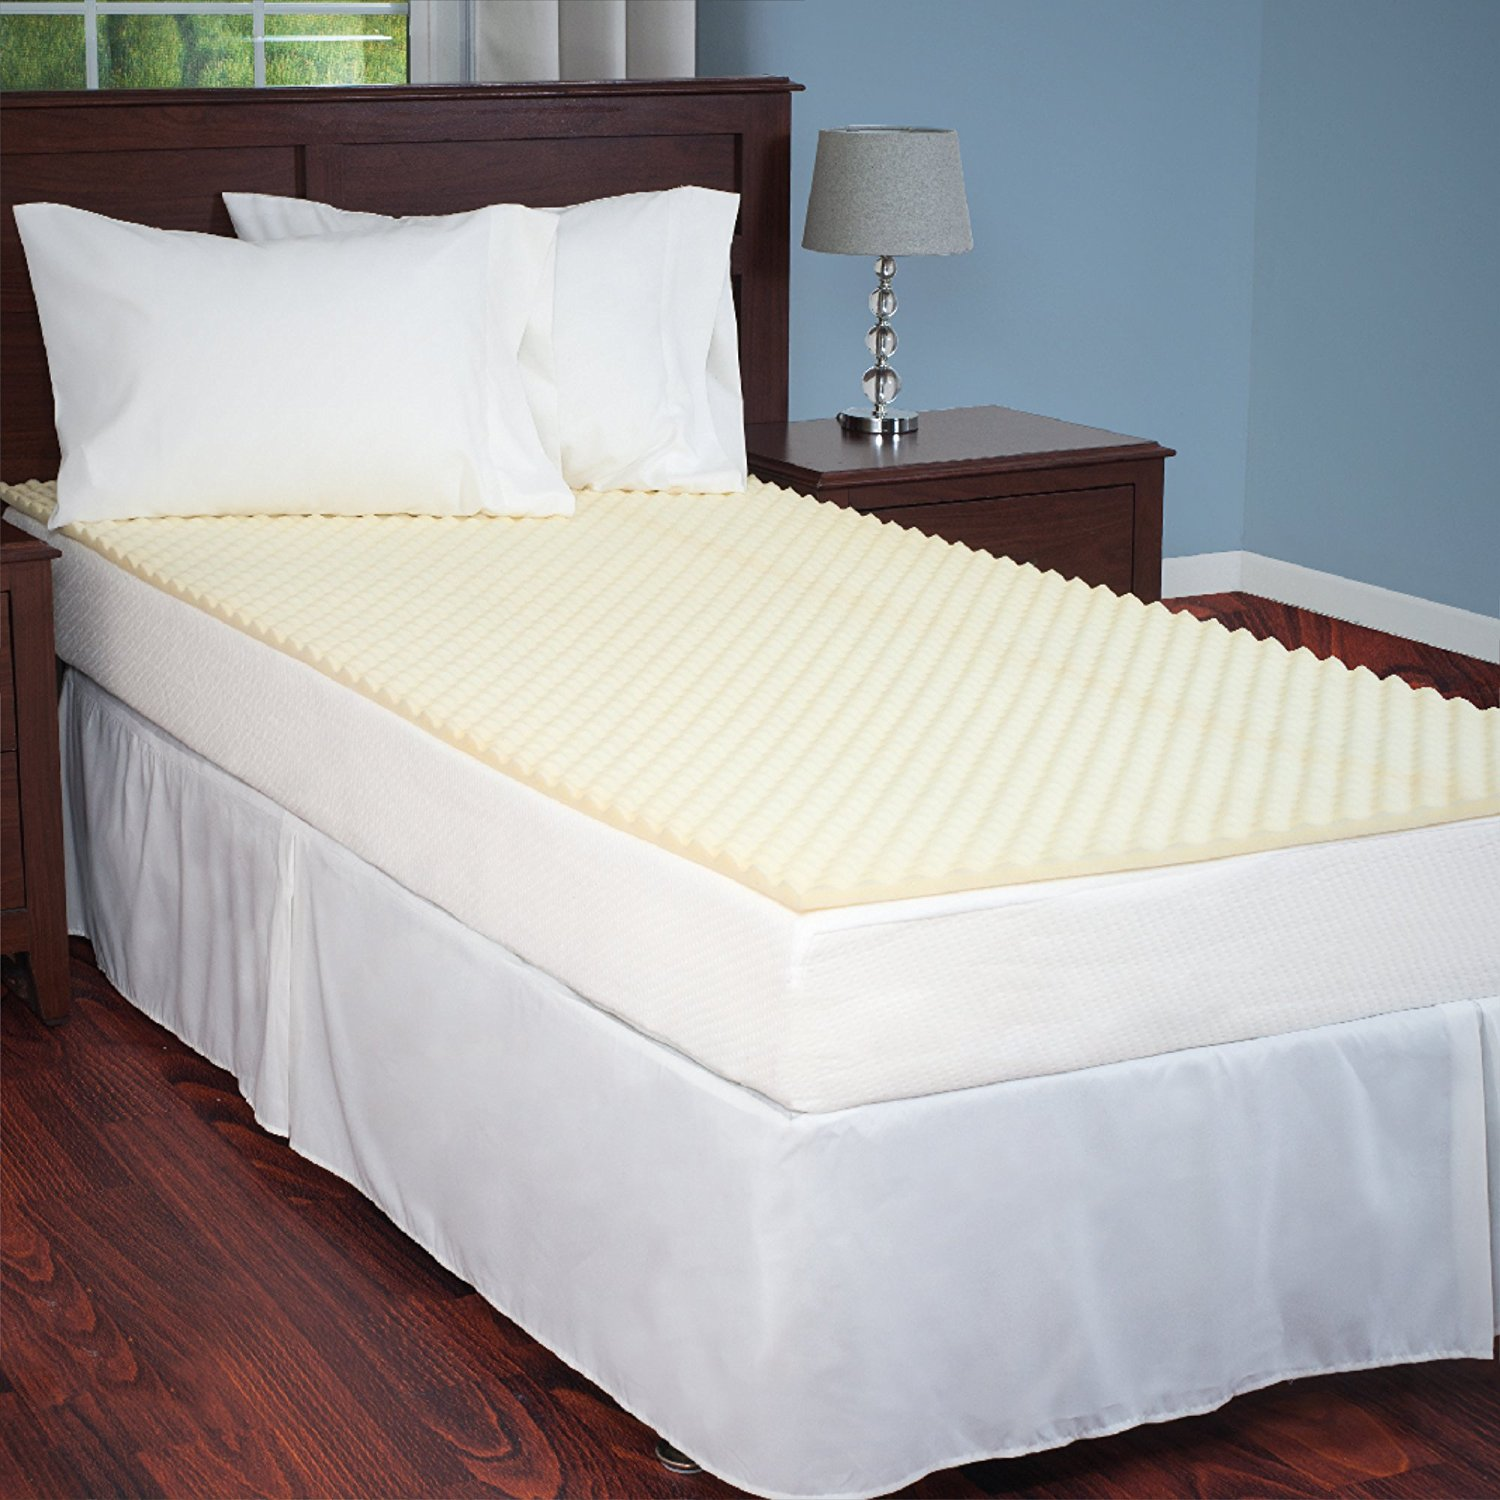 Egg Crate Mattress Topper Twin Xl Designed To Add Extra Comfort And